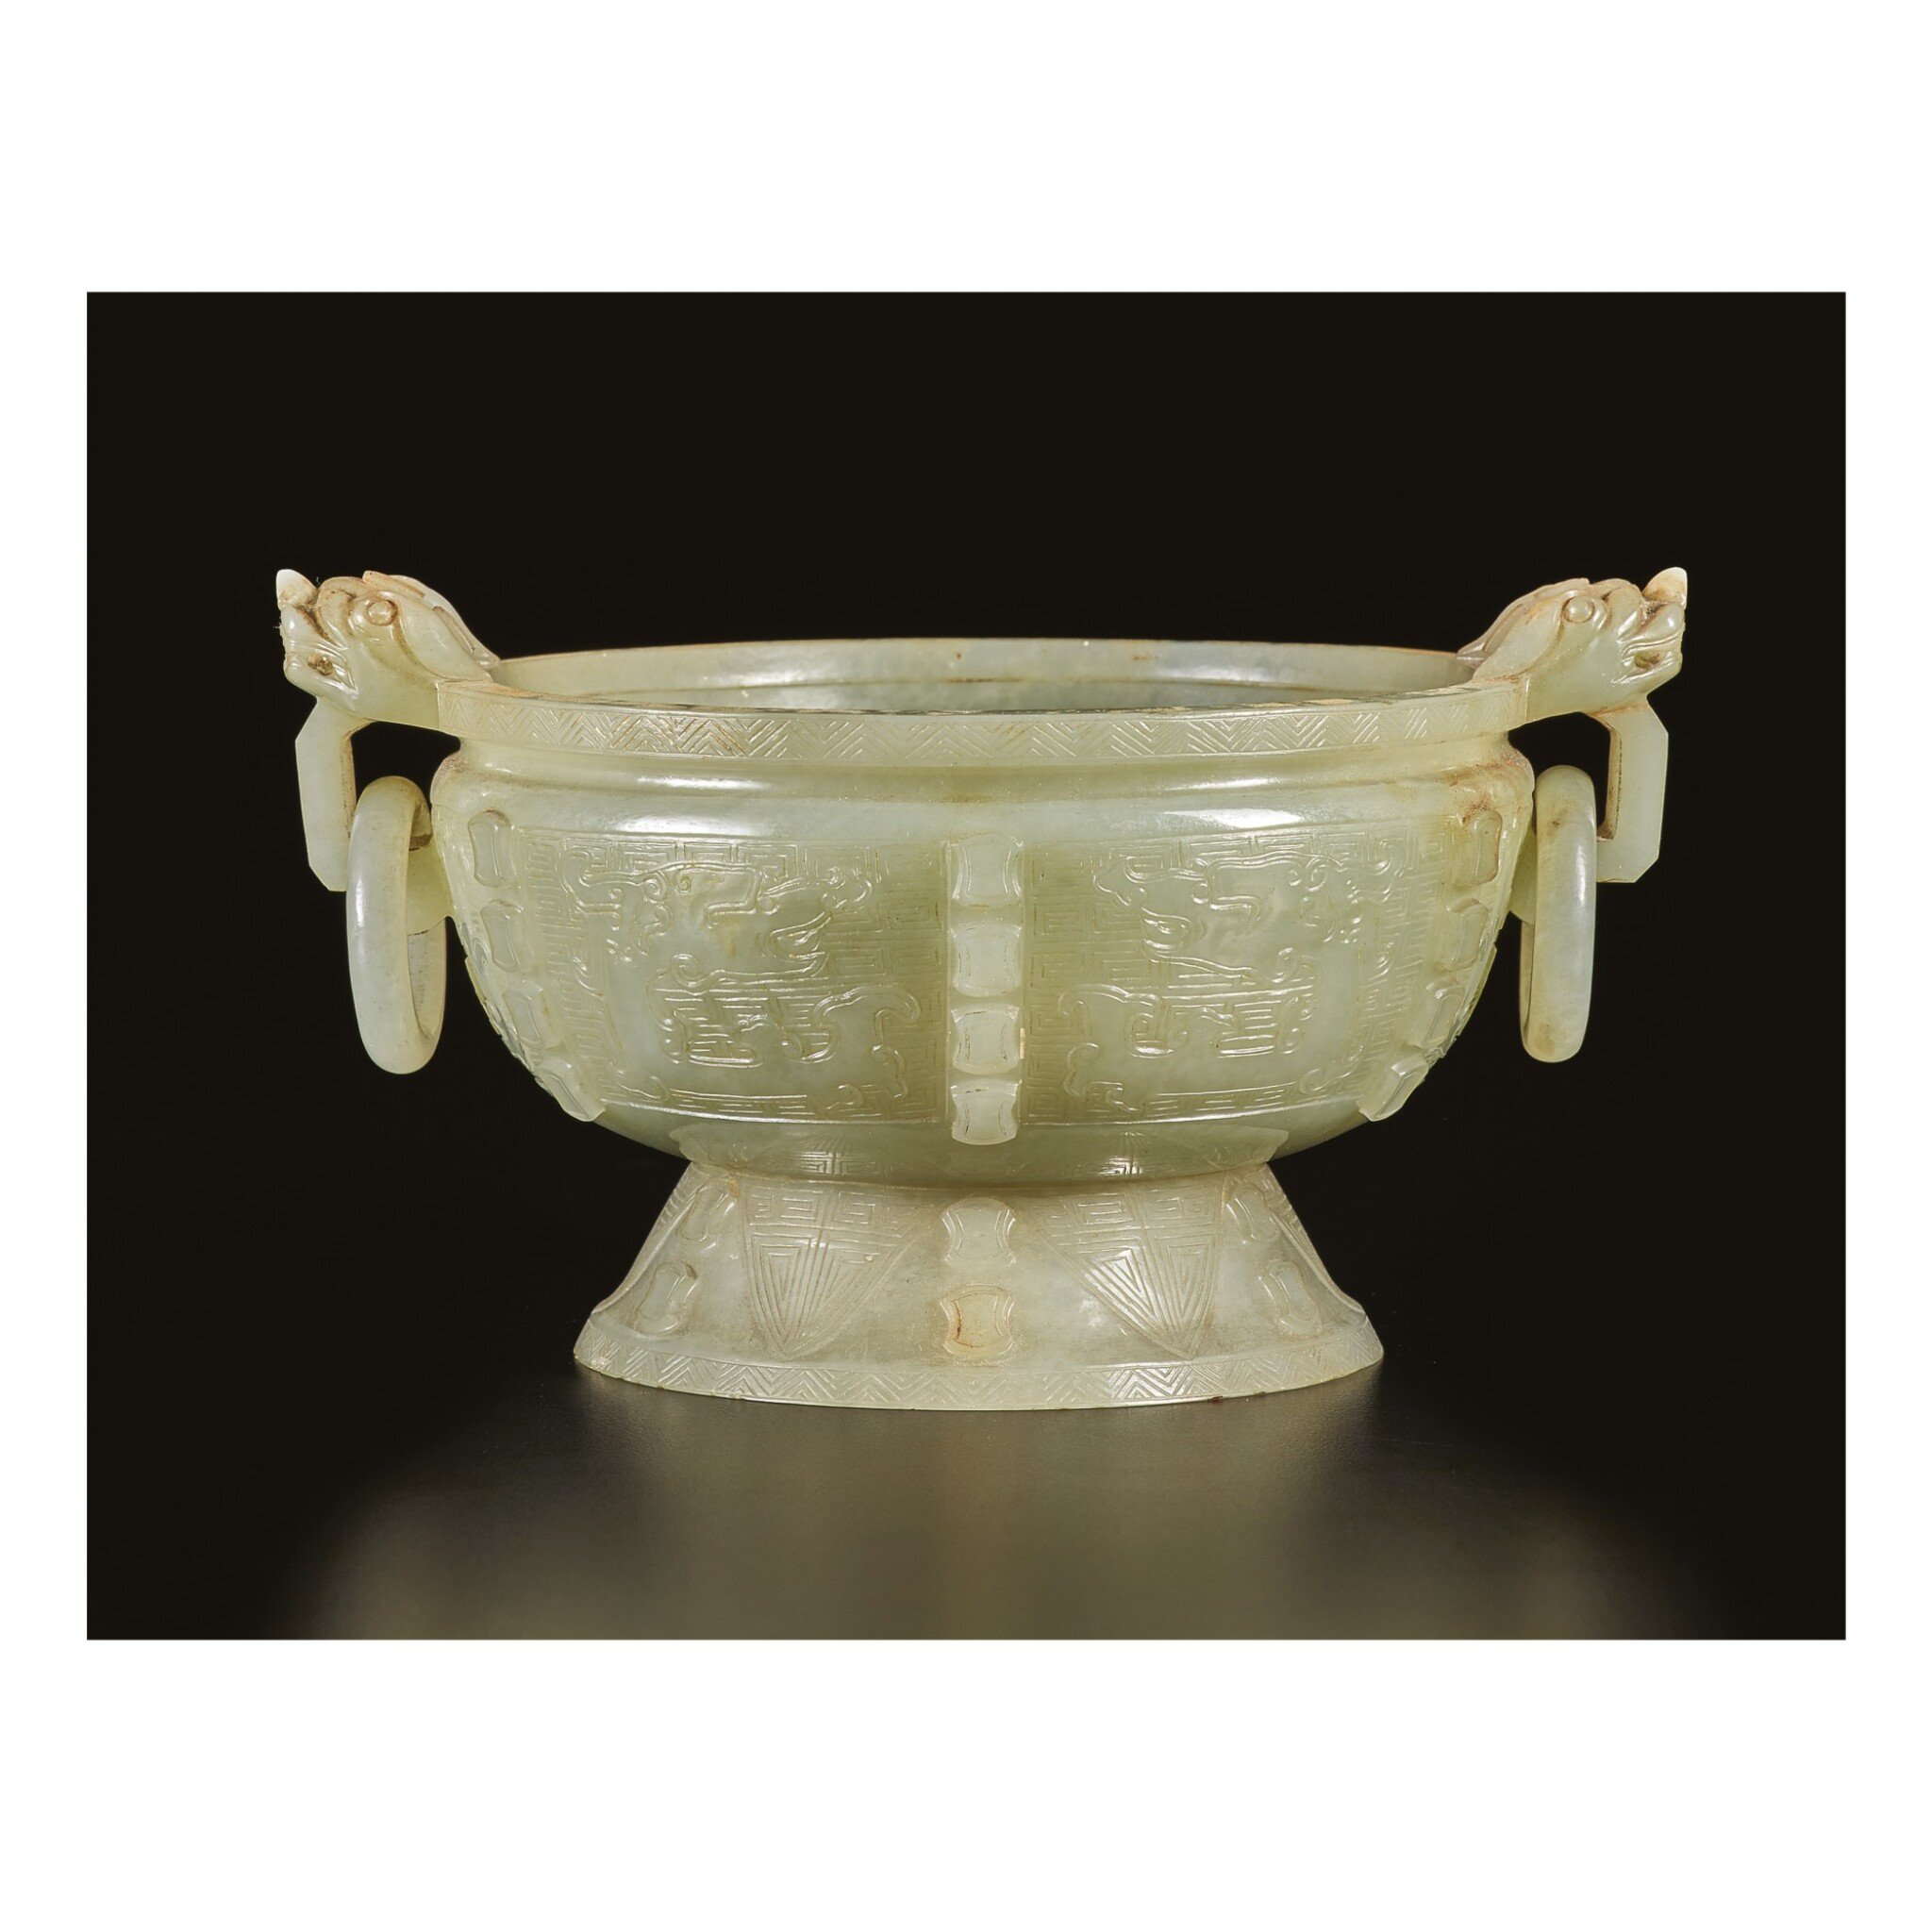 View full screen - View 1 of Lot 651. AN ARCHAISTIC PALE CELADON JADE CENSER, QING DYNASTY, 18TH CENTURY.